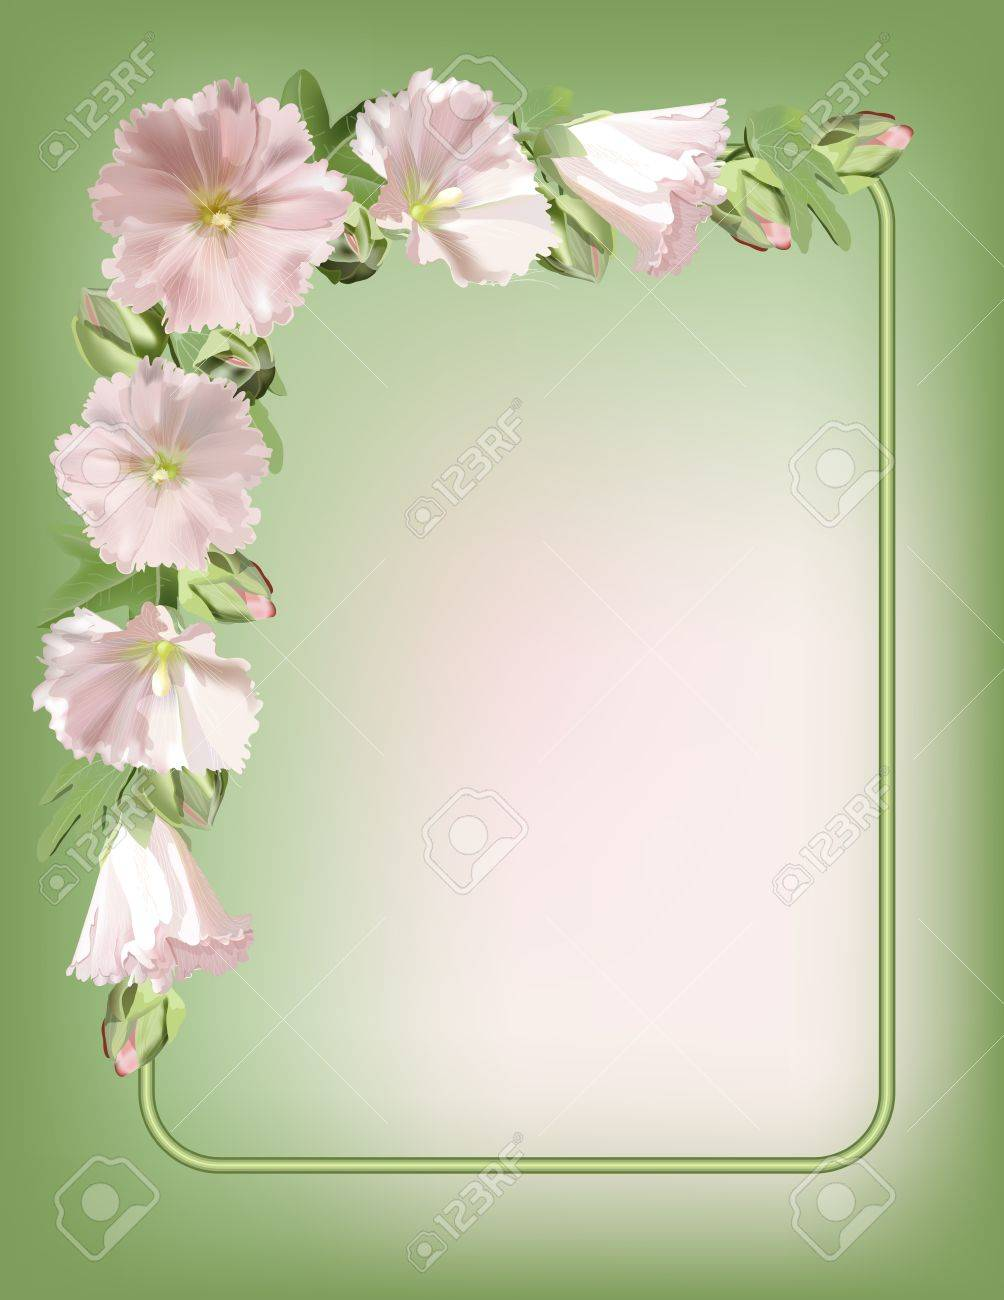 Floral Frame With Mallow Flowers Background